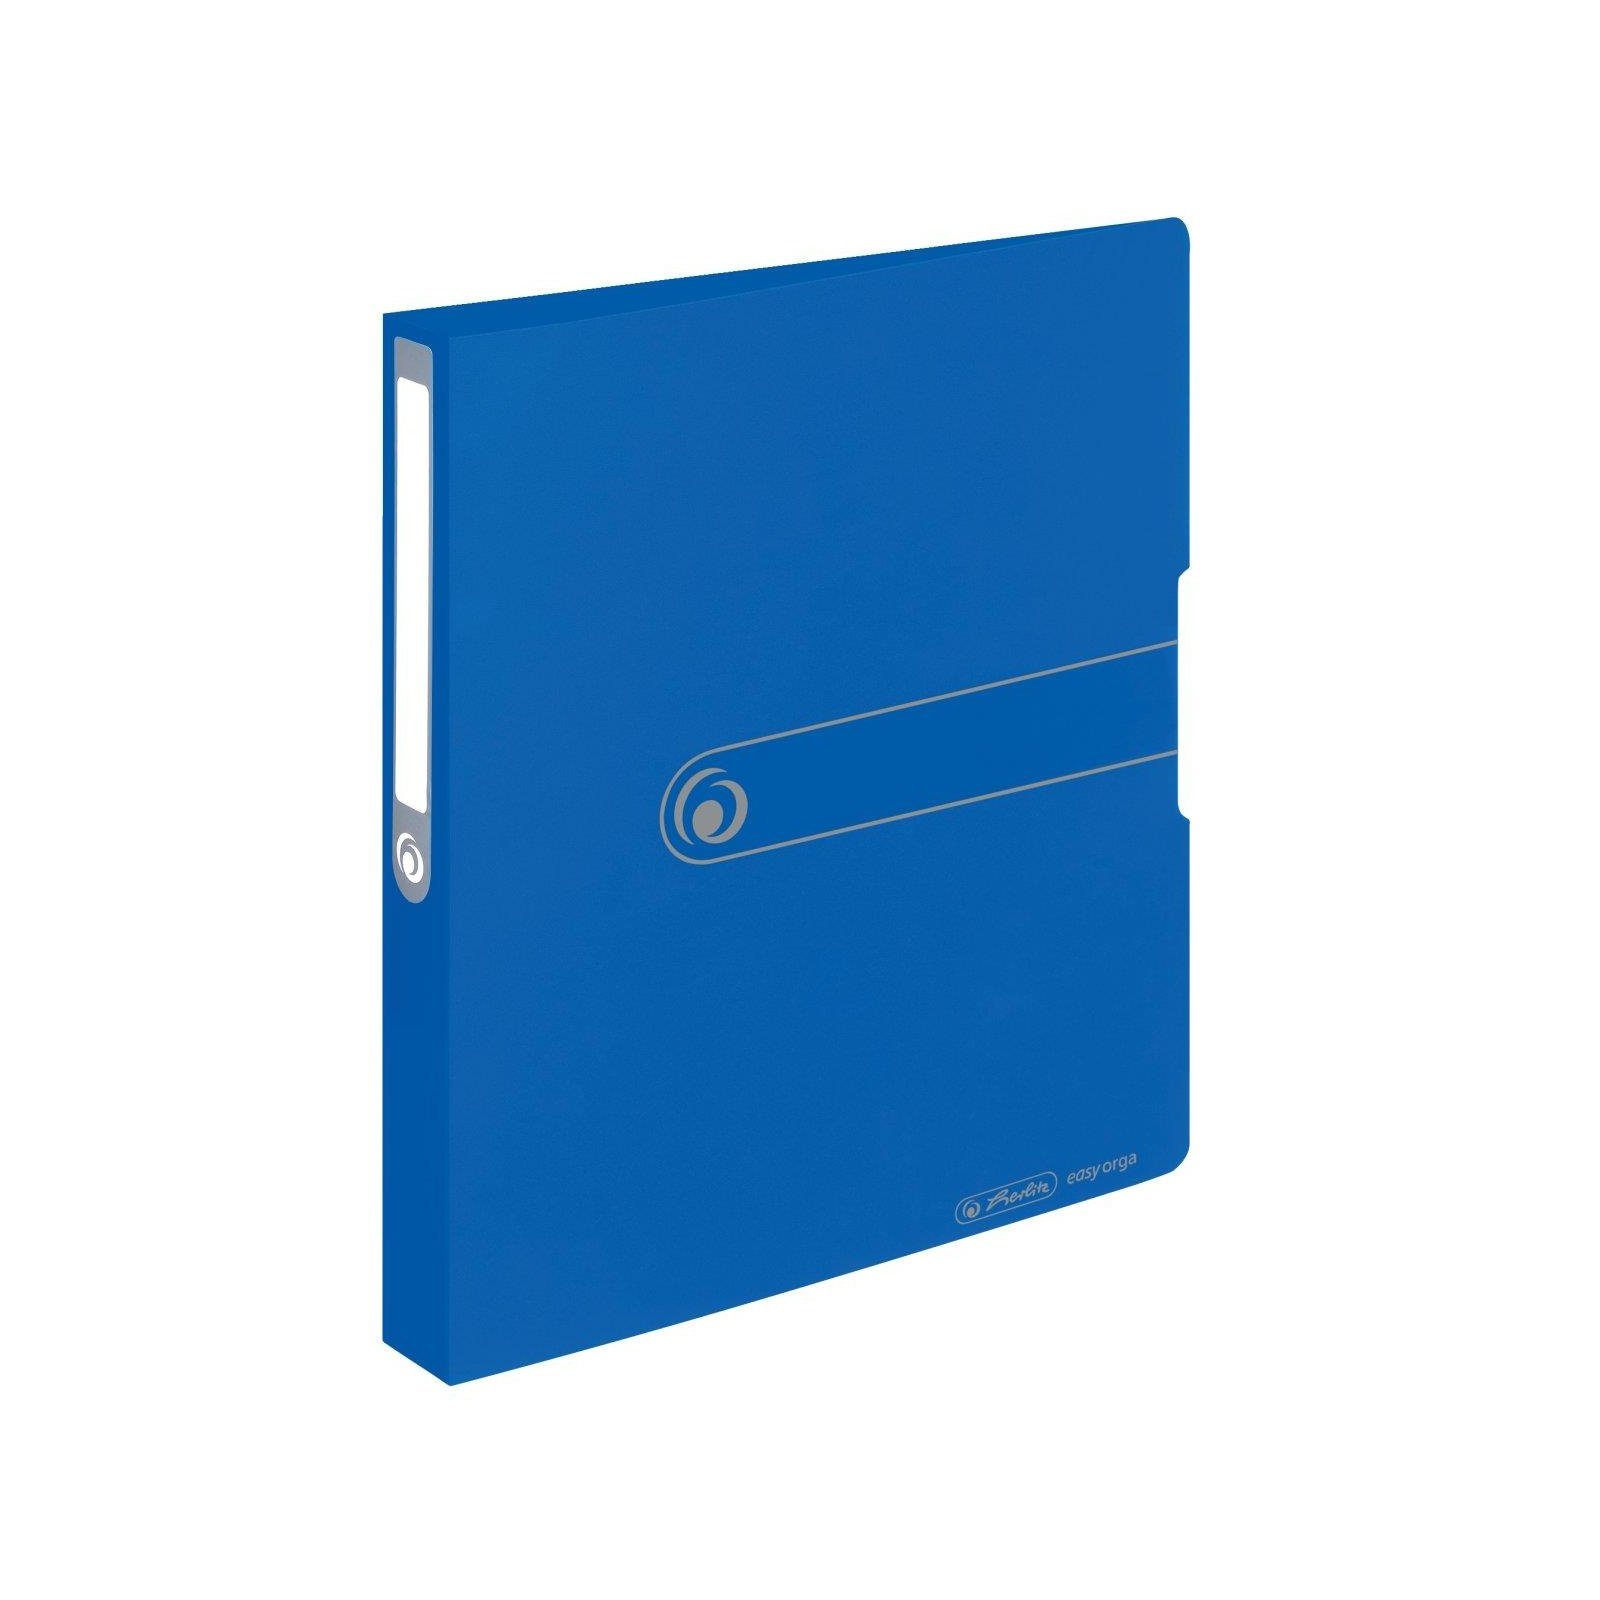 herlitz Ringbuch easy orga to go  A4 2-Ring 38mm blau opak